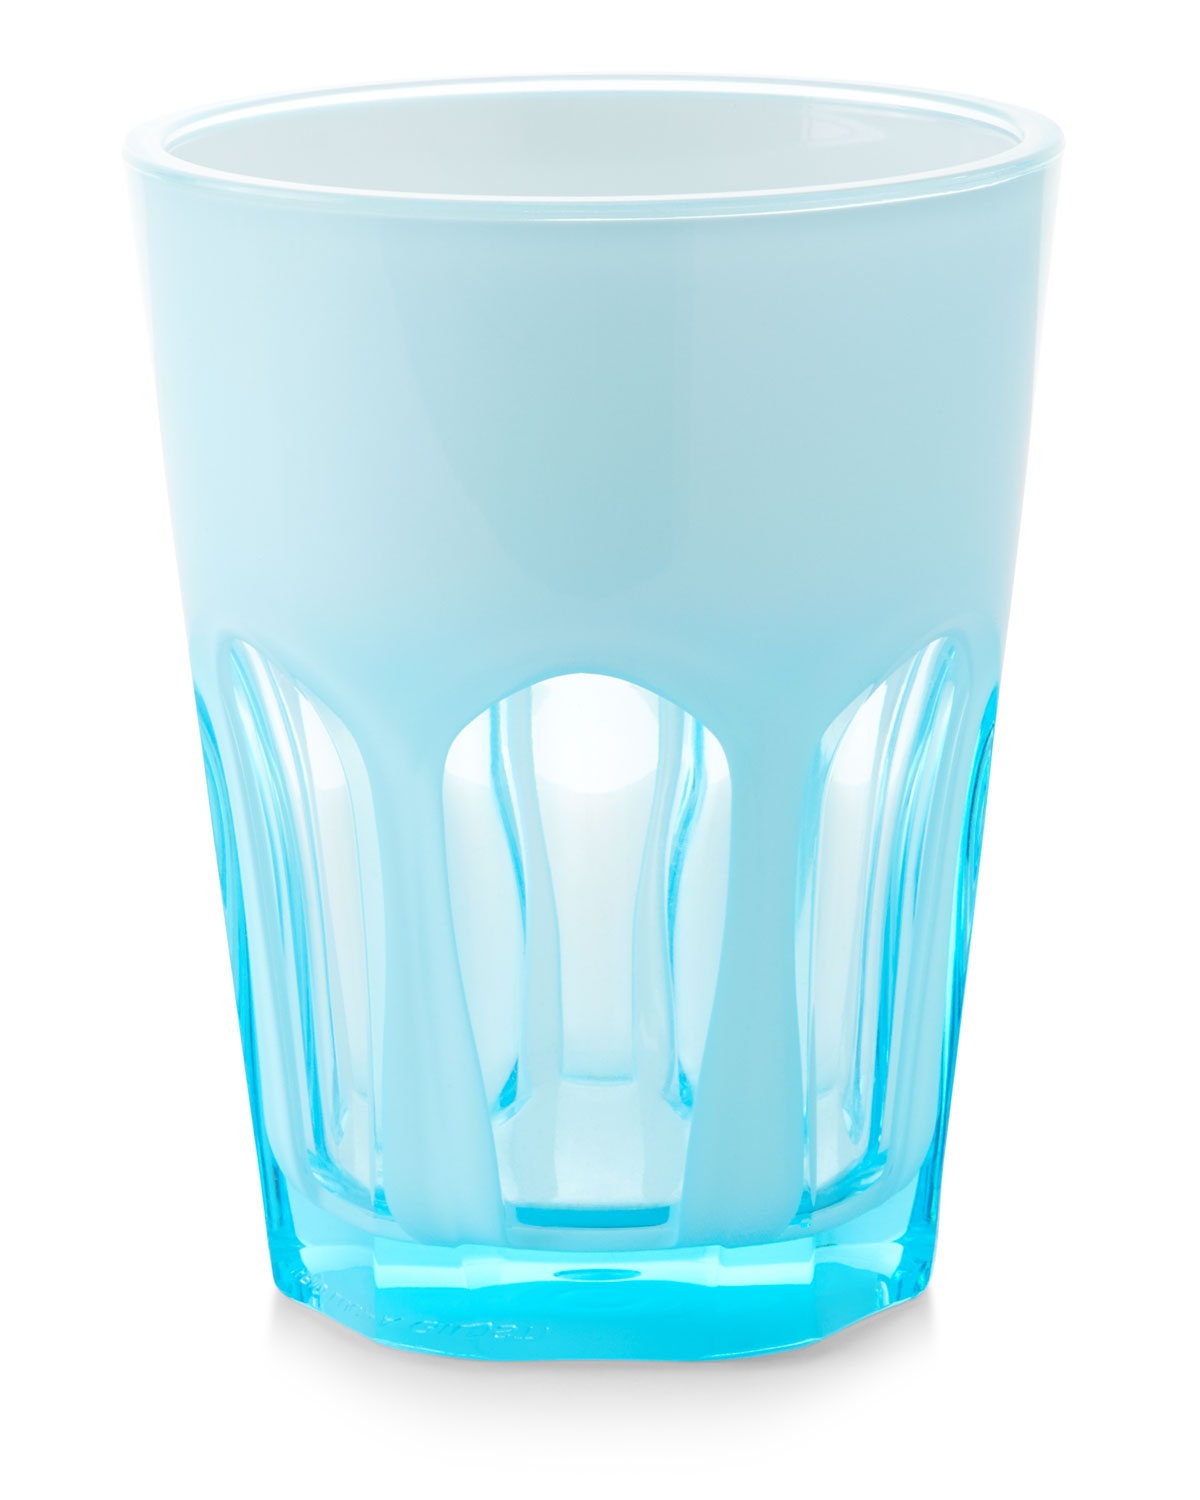 Double Face Acrylic Tumbler Glass, Turquoise